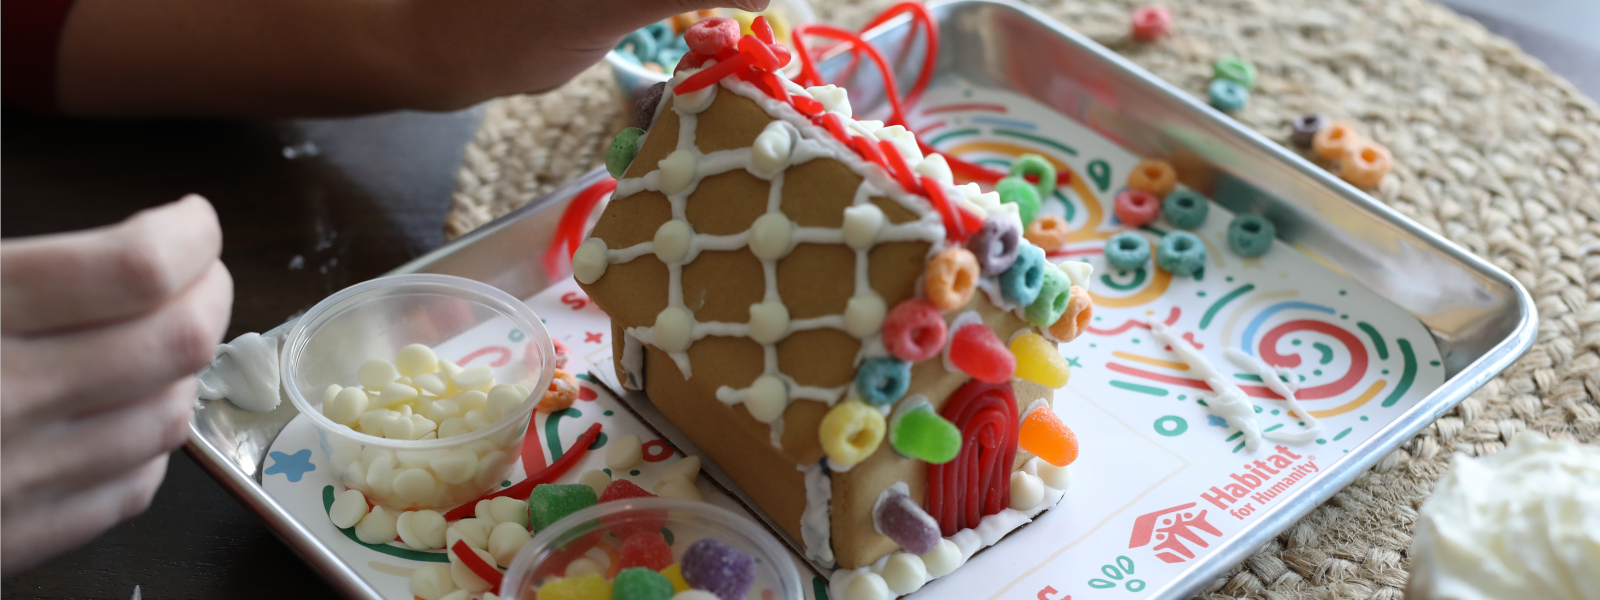 Habitat for Humanity Gingerbread House